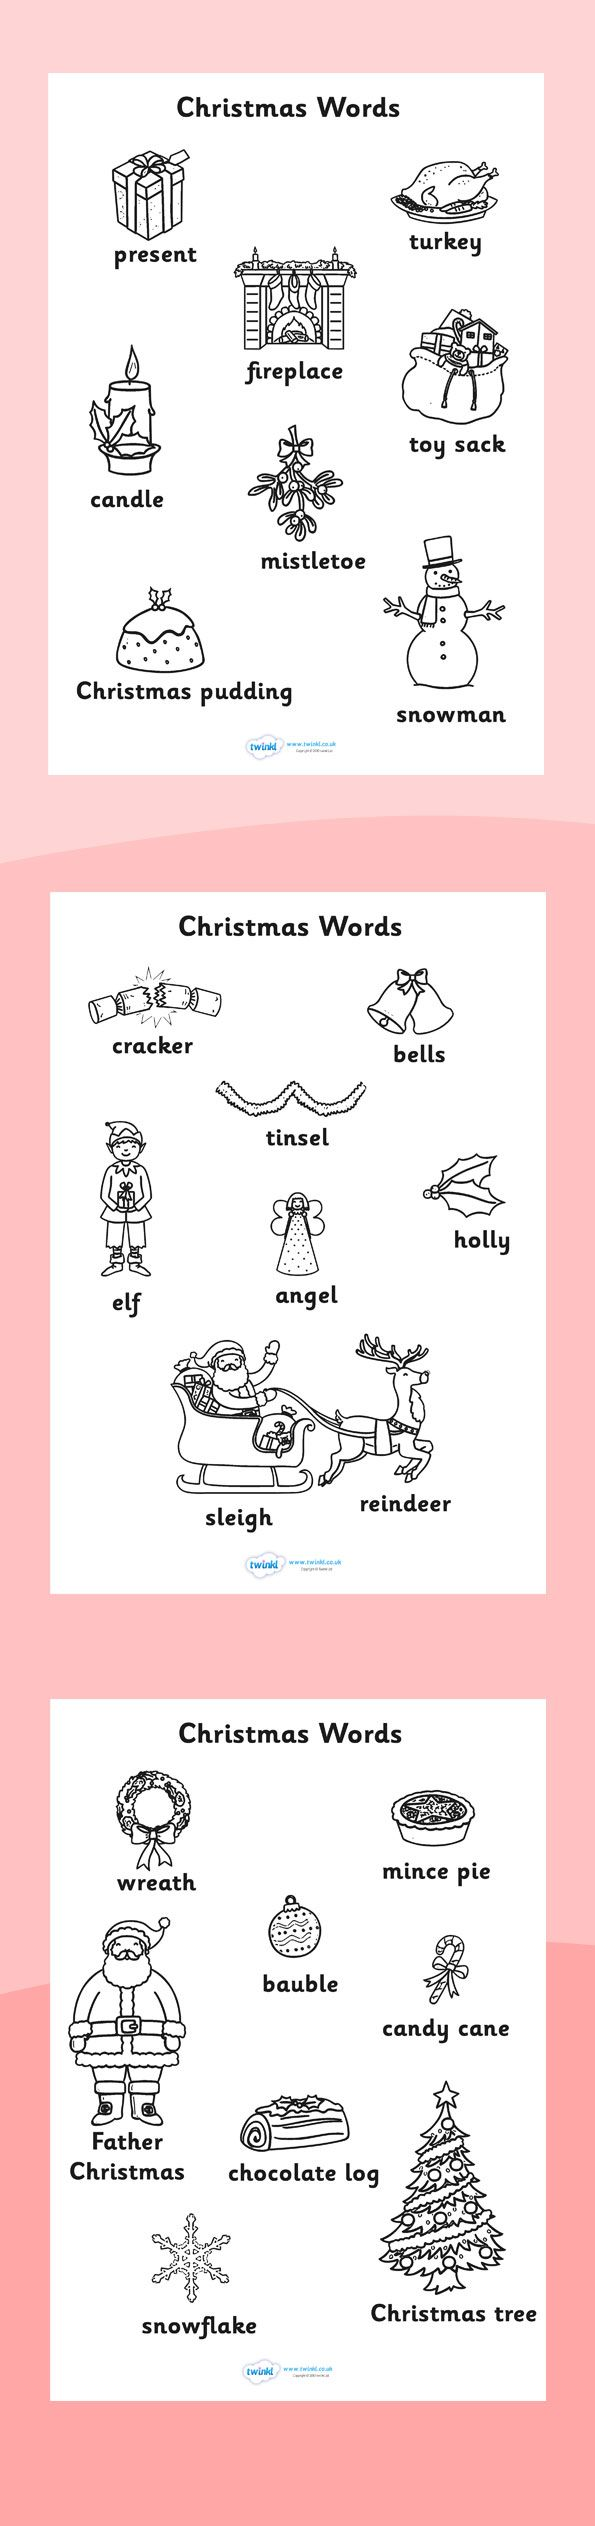 Twinkl Resources >> Christmas Words Colouring Sheets ...